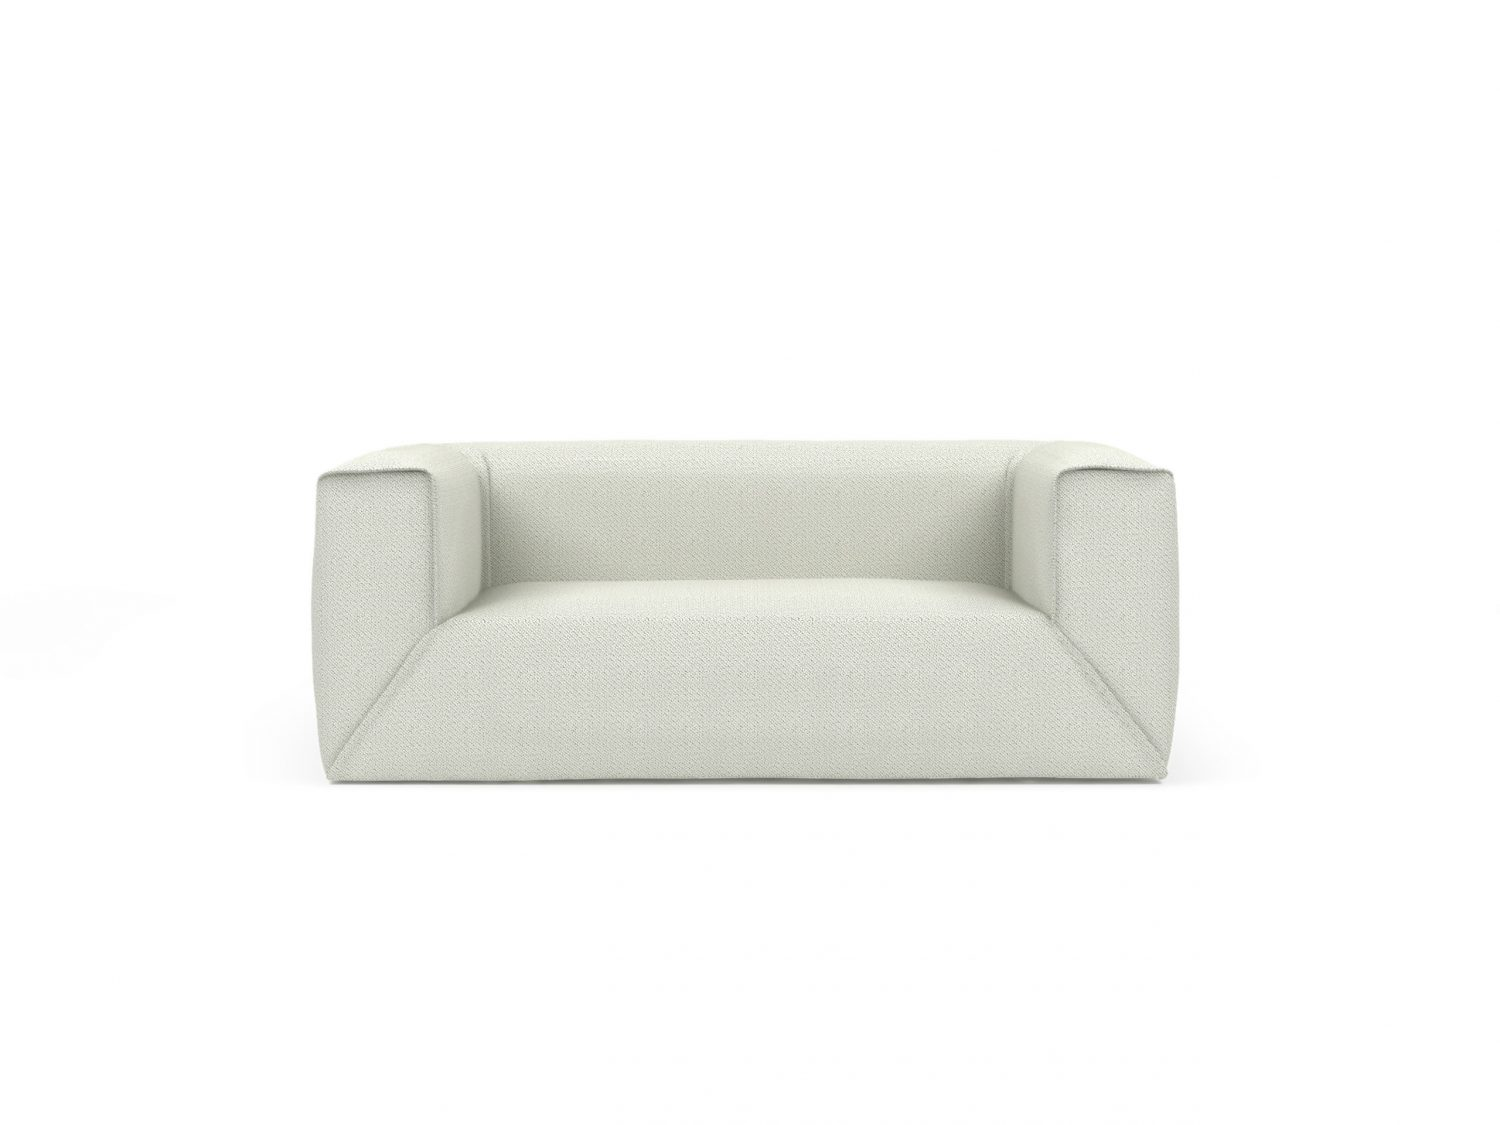 Pac Sofa By Michael Sodeau 1